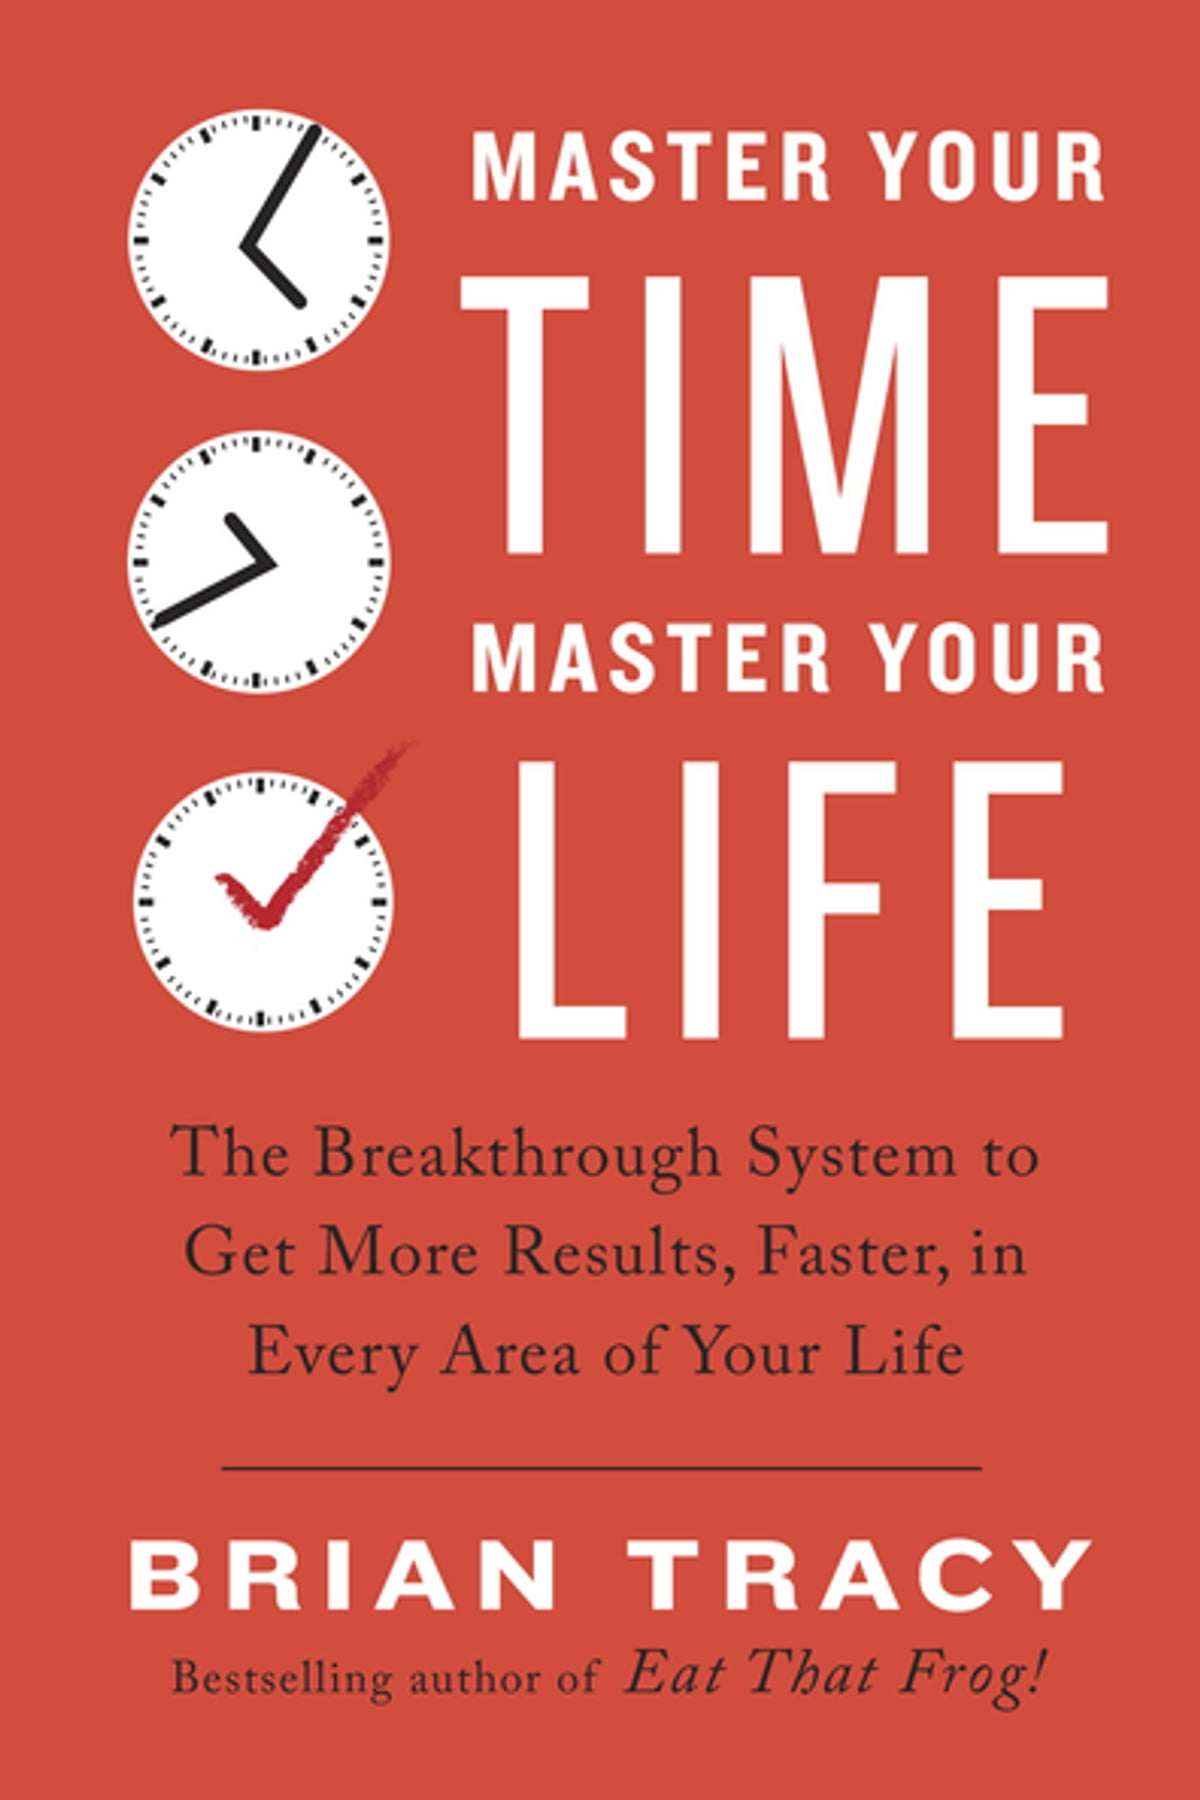 Master Your Time, Master Your Life eBook by Brian Tracy - 9780399183836 |  Rakuten Kobo